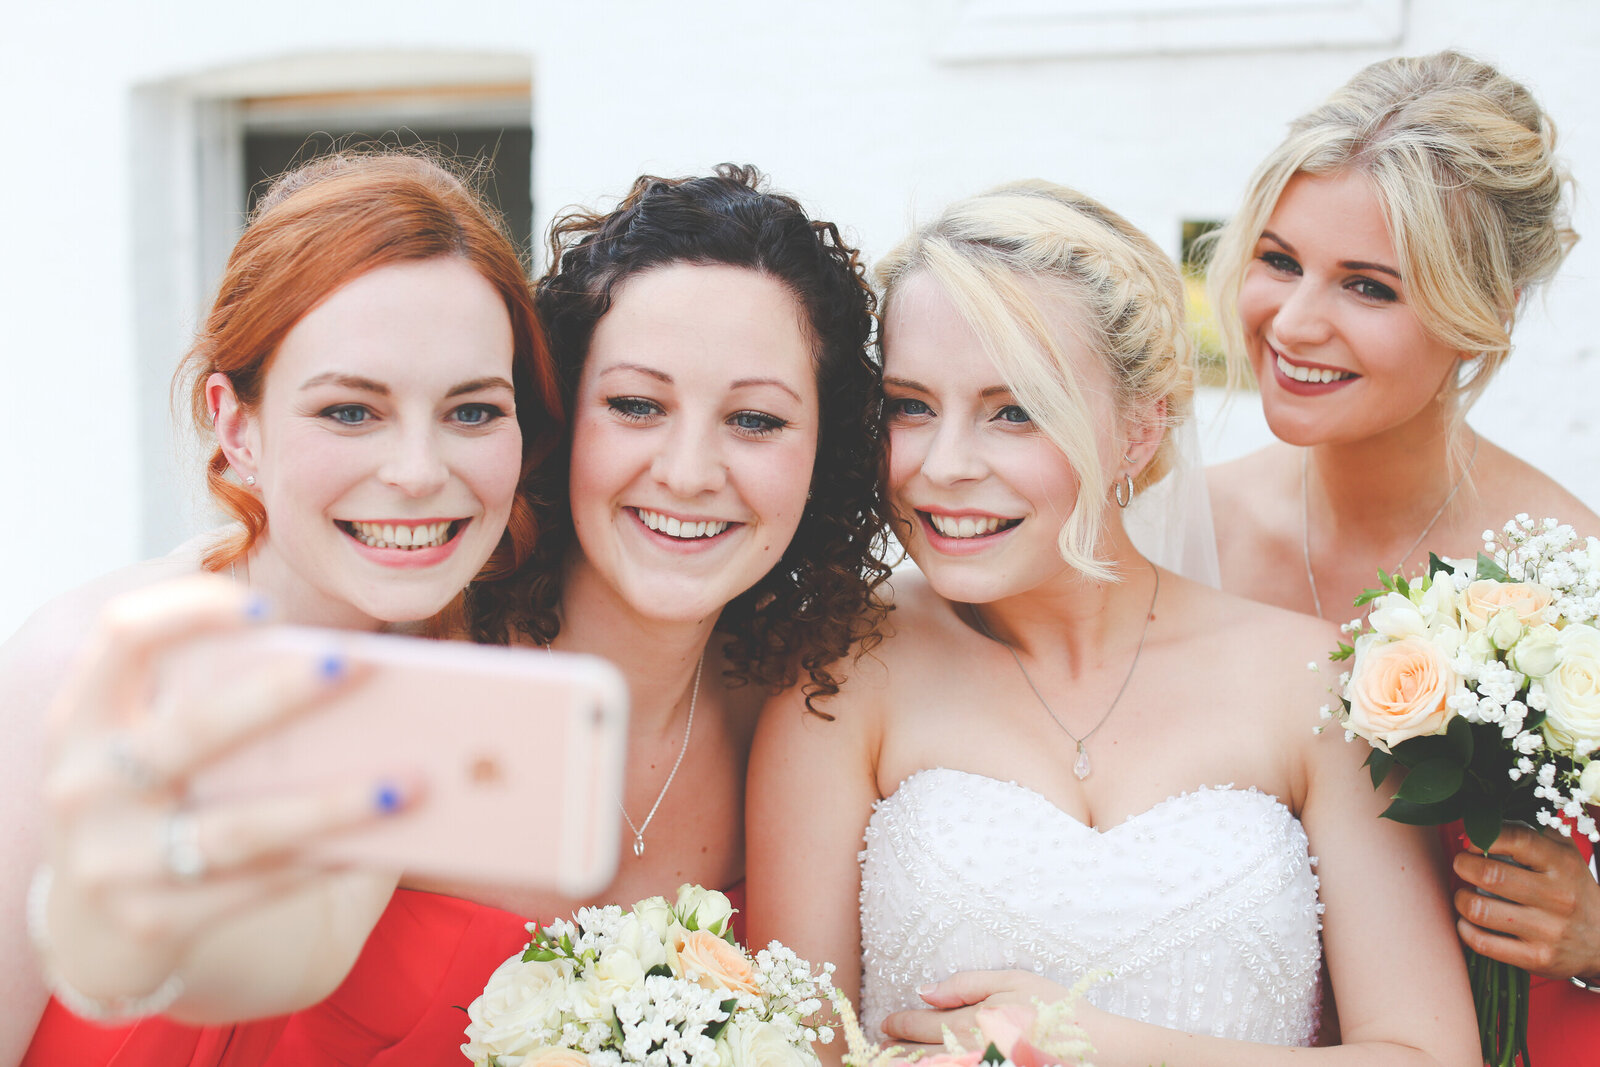 WP-SELFIE-AT-A-WEDDING-PEMBROKE-LODGE_0008